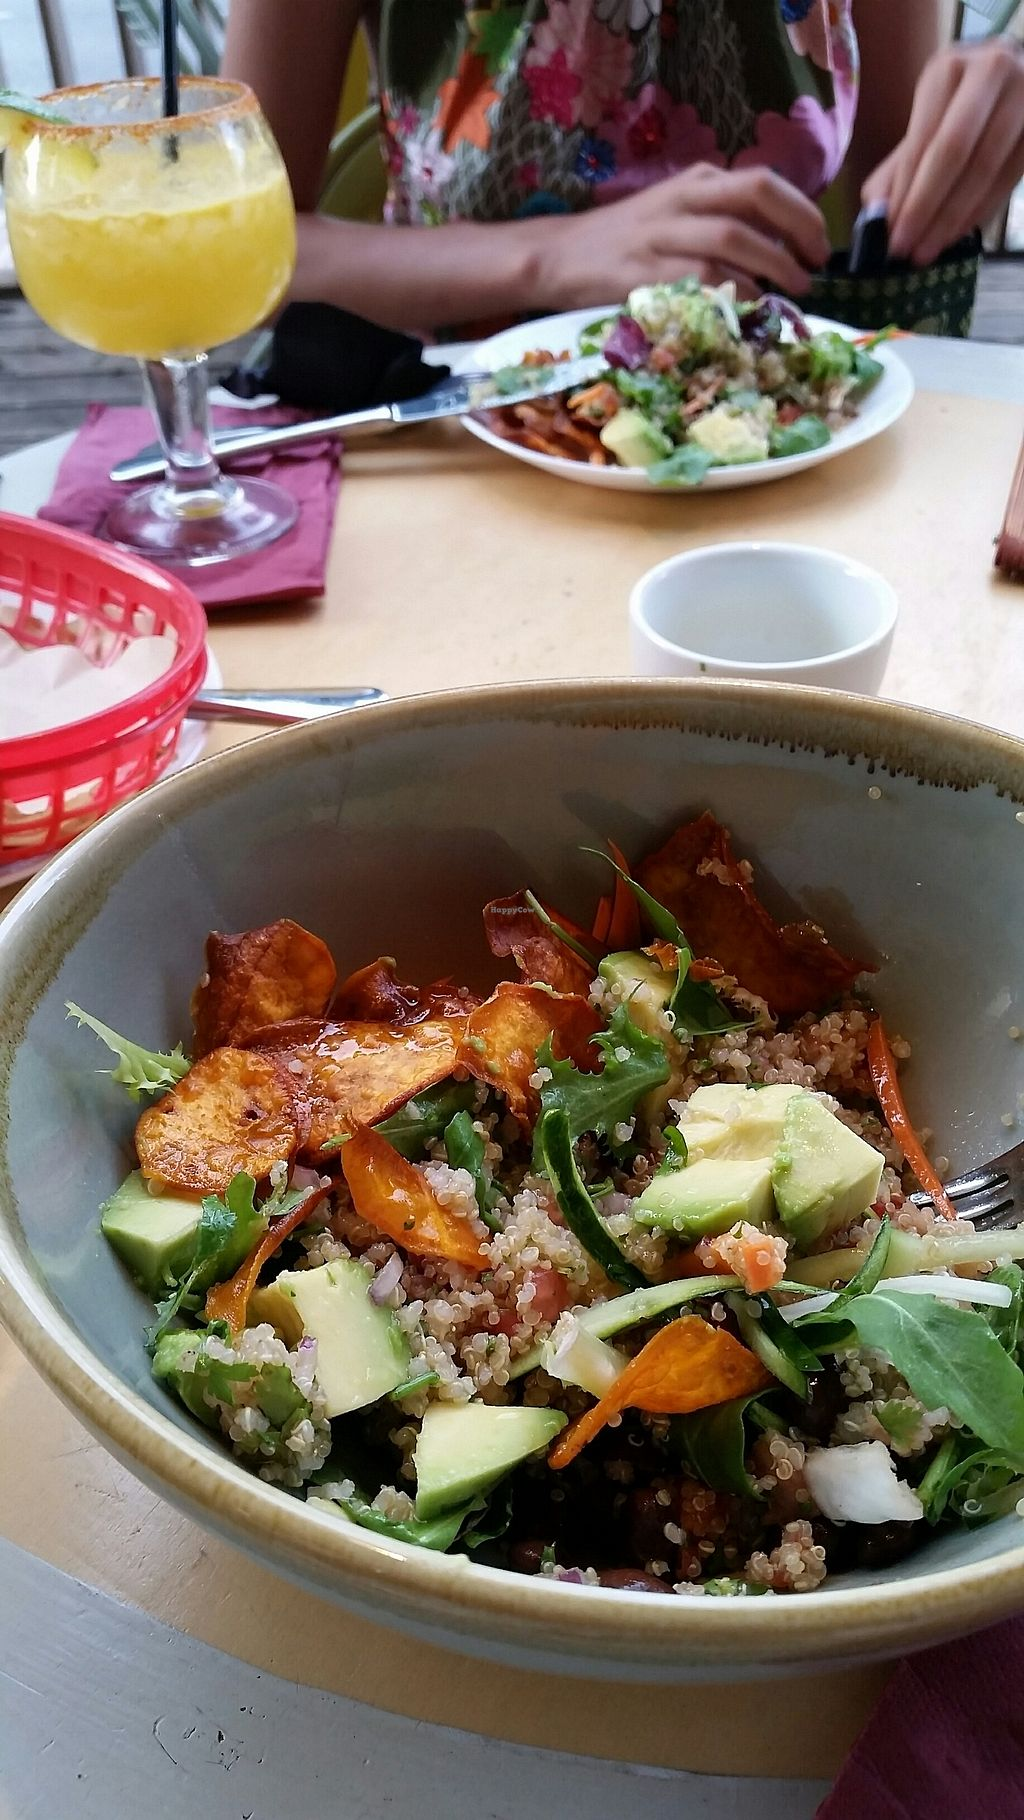 """Photo of Taco Paco  by <a href=""""/members/profile/rominargh"""">rominargh</a> <br/>quinoa salad (half eaten) <br/> August 1, 2017  - <a href='/contact/abuse/image/97558/287569'>Report</a>"""